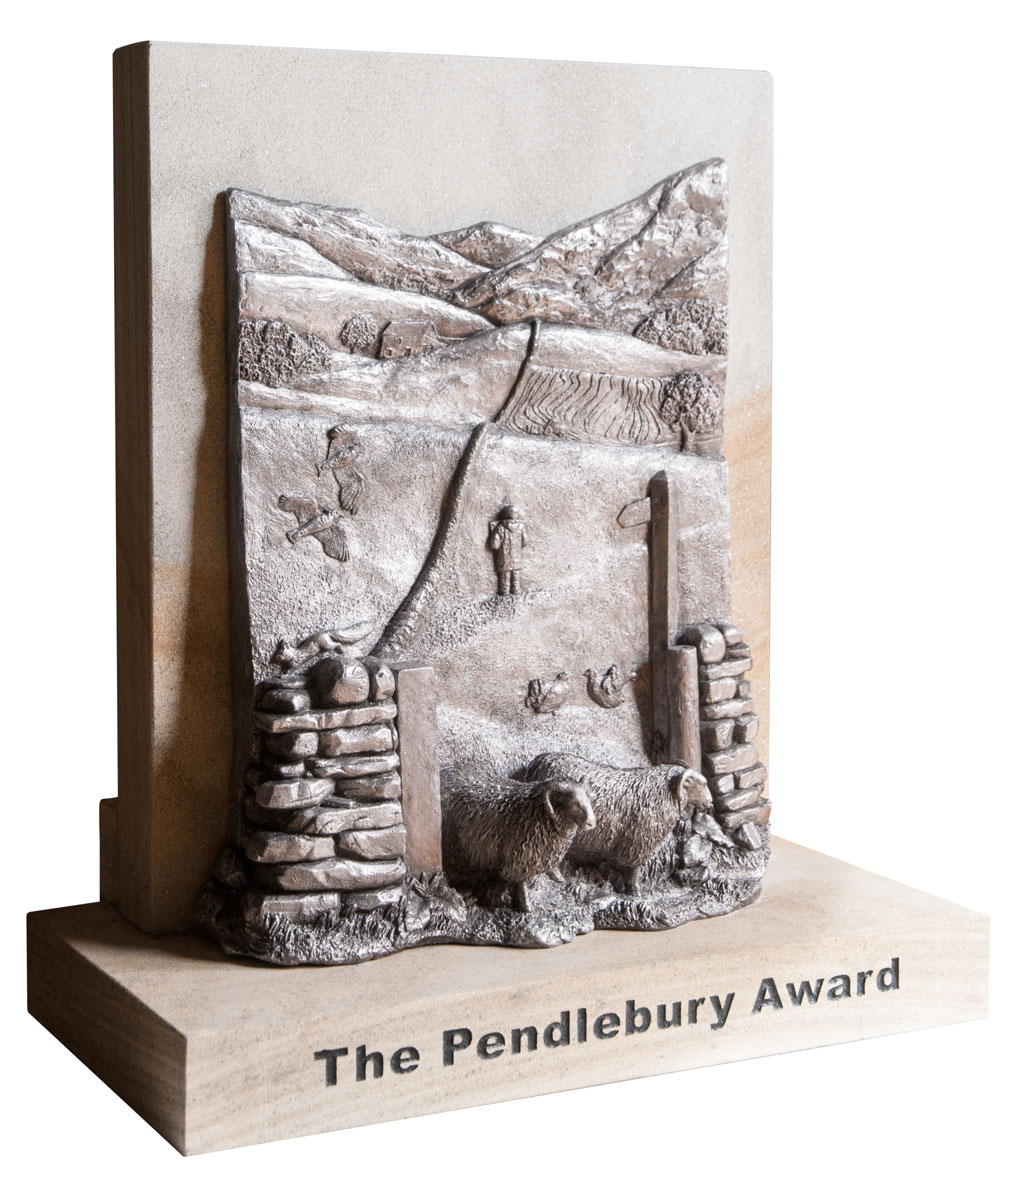 'The Pendlebury Award'-2013